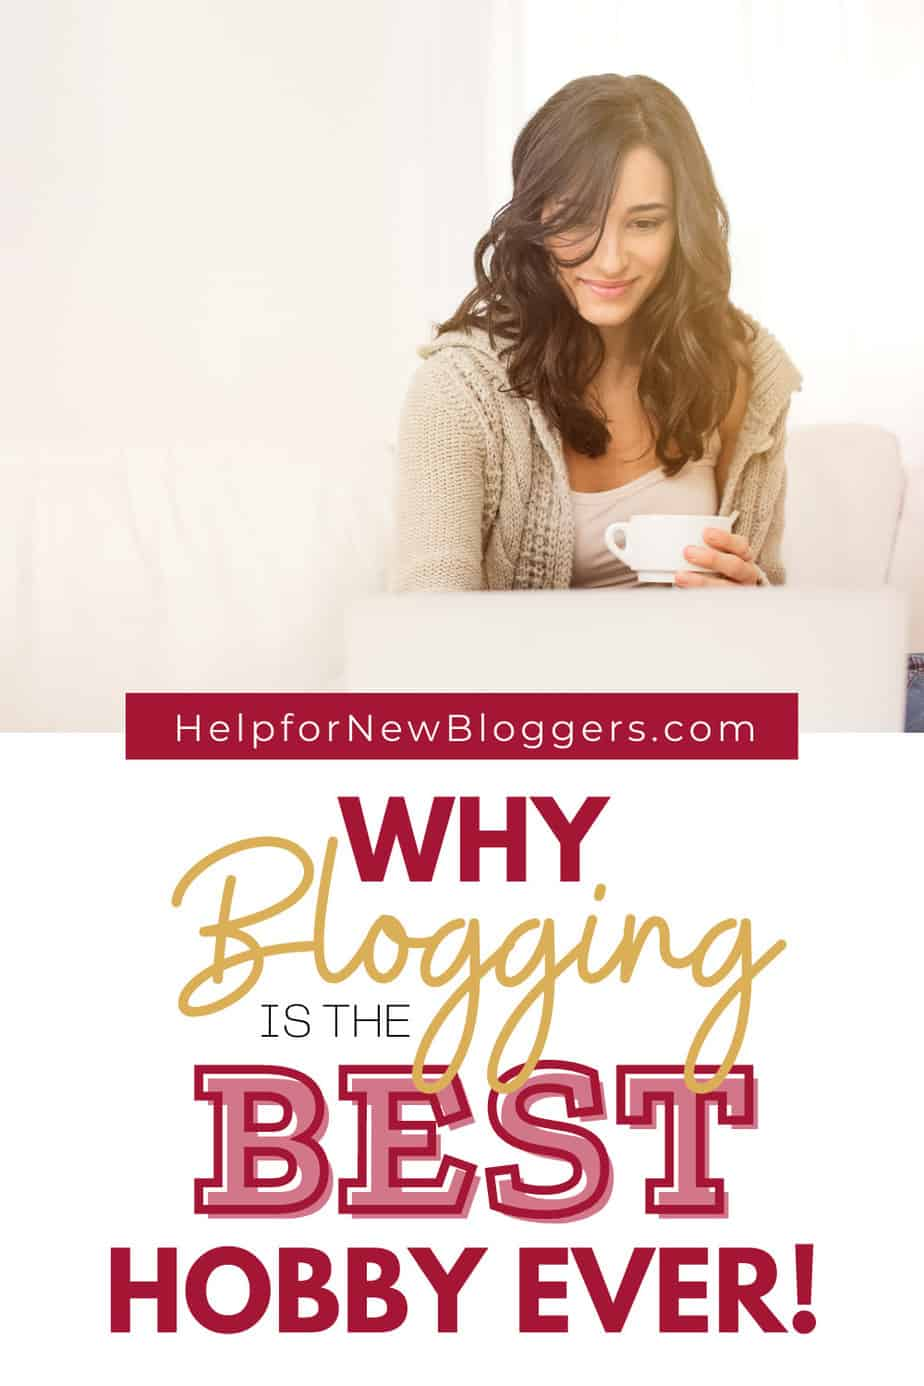 Blogging is the best hobby